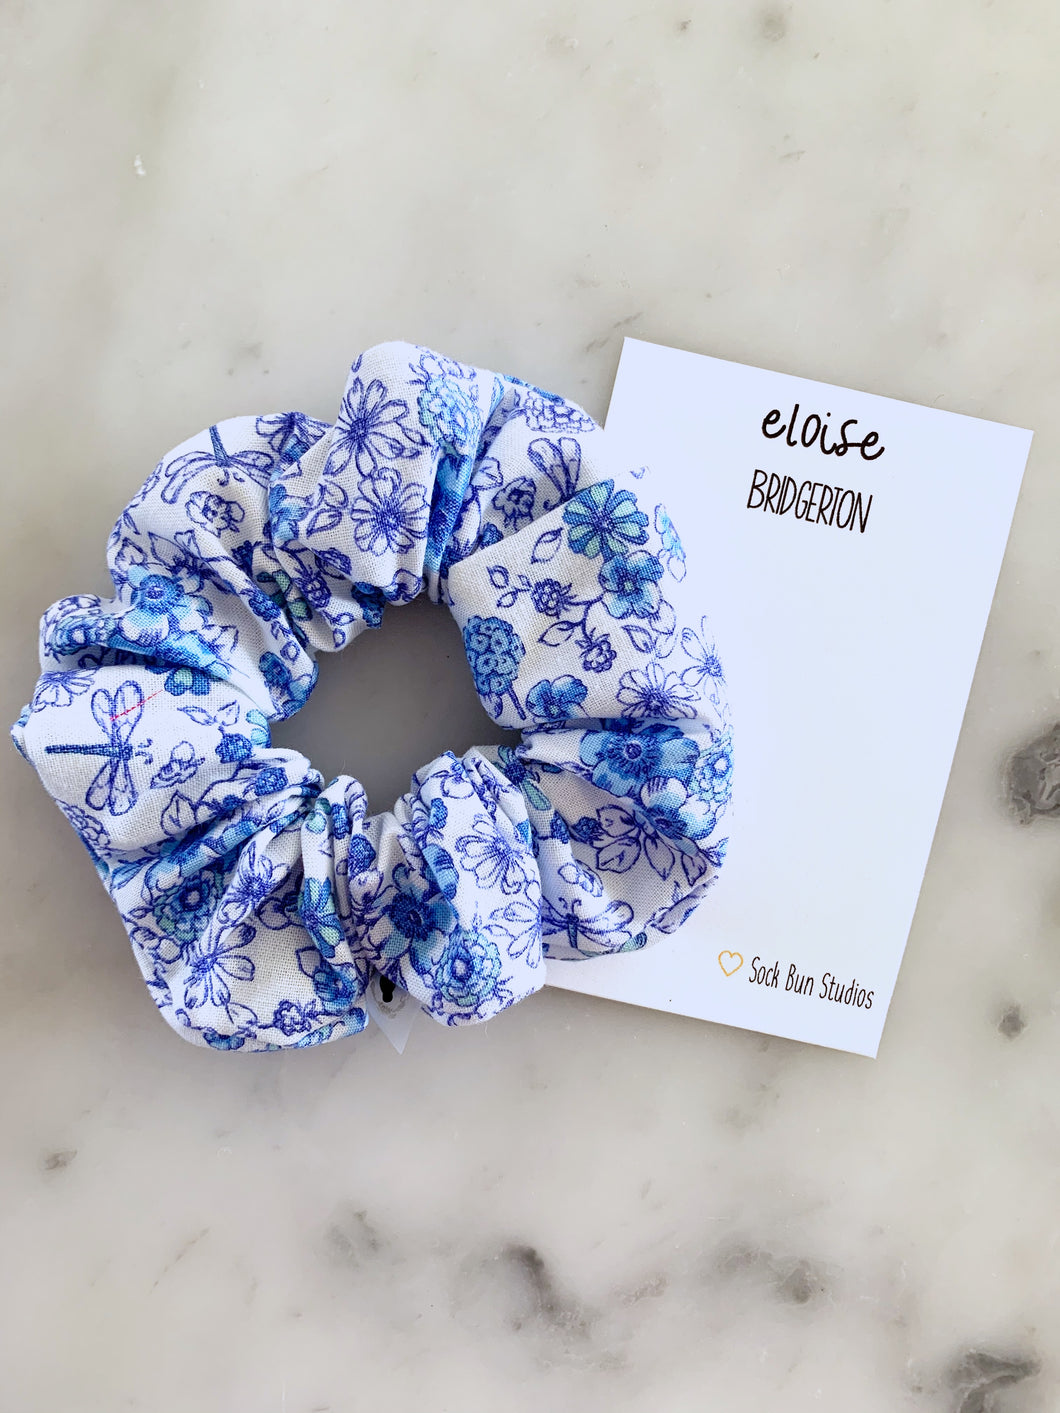 NEW Eloise Bridgerton Scrunchie